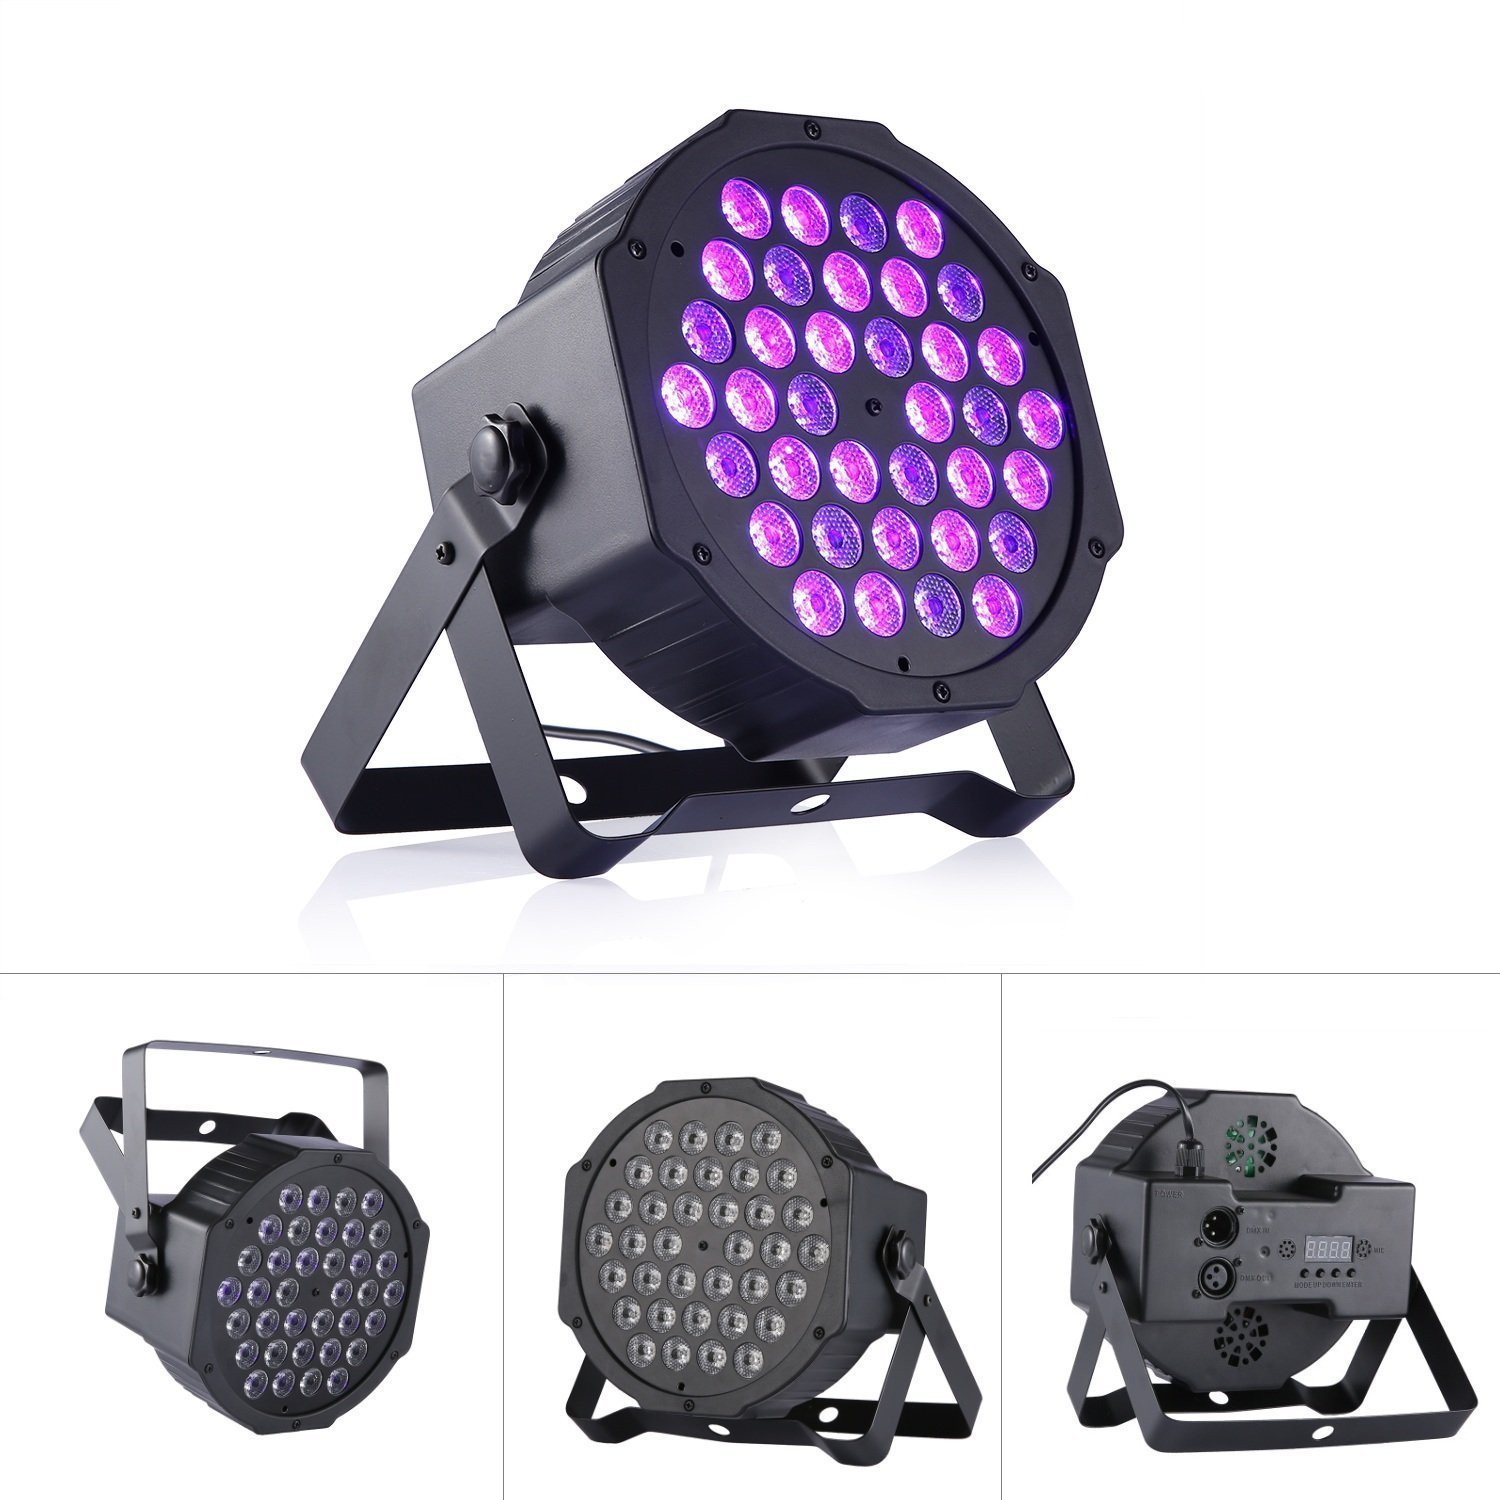 72W Black Light DJ Lights UV Blacklight Stage Spotlight 36 LEDs Auto Lighting Voice Control for Party Wedding Disco Club with Control by Deep Dream (Image #1)